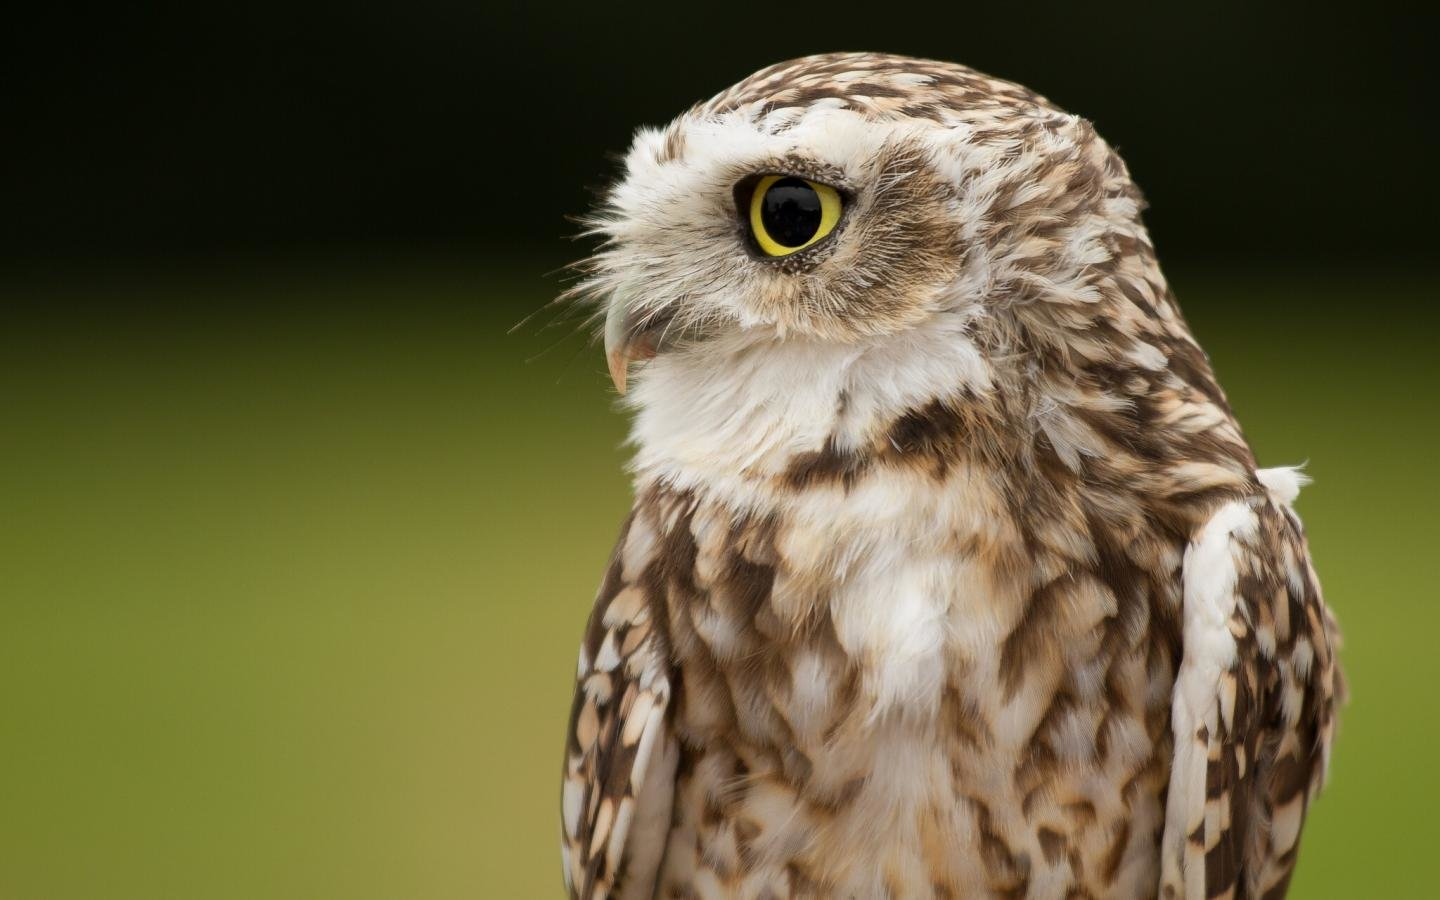 High resolution Owl hd 1440x900 wallpaper ID:237096 for computer